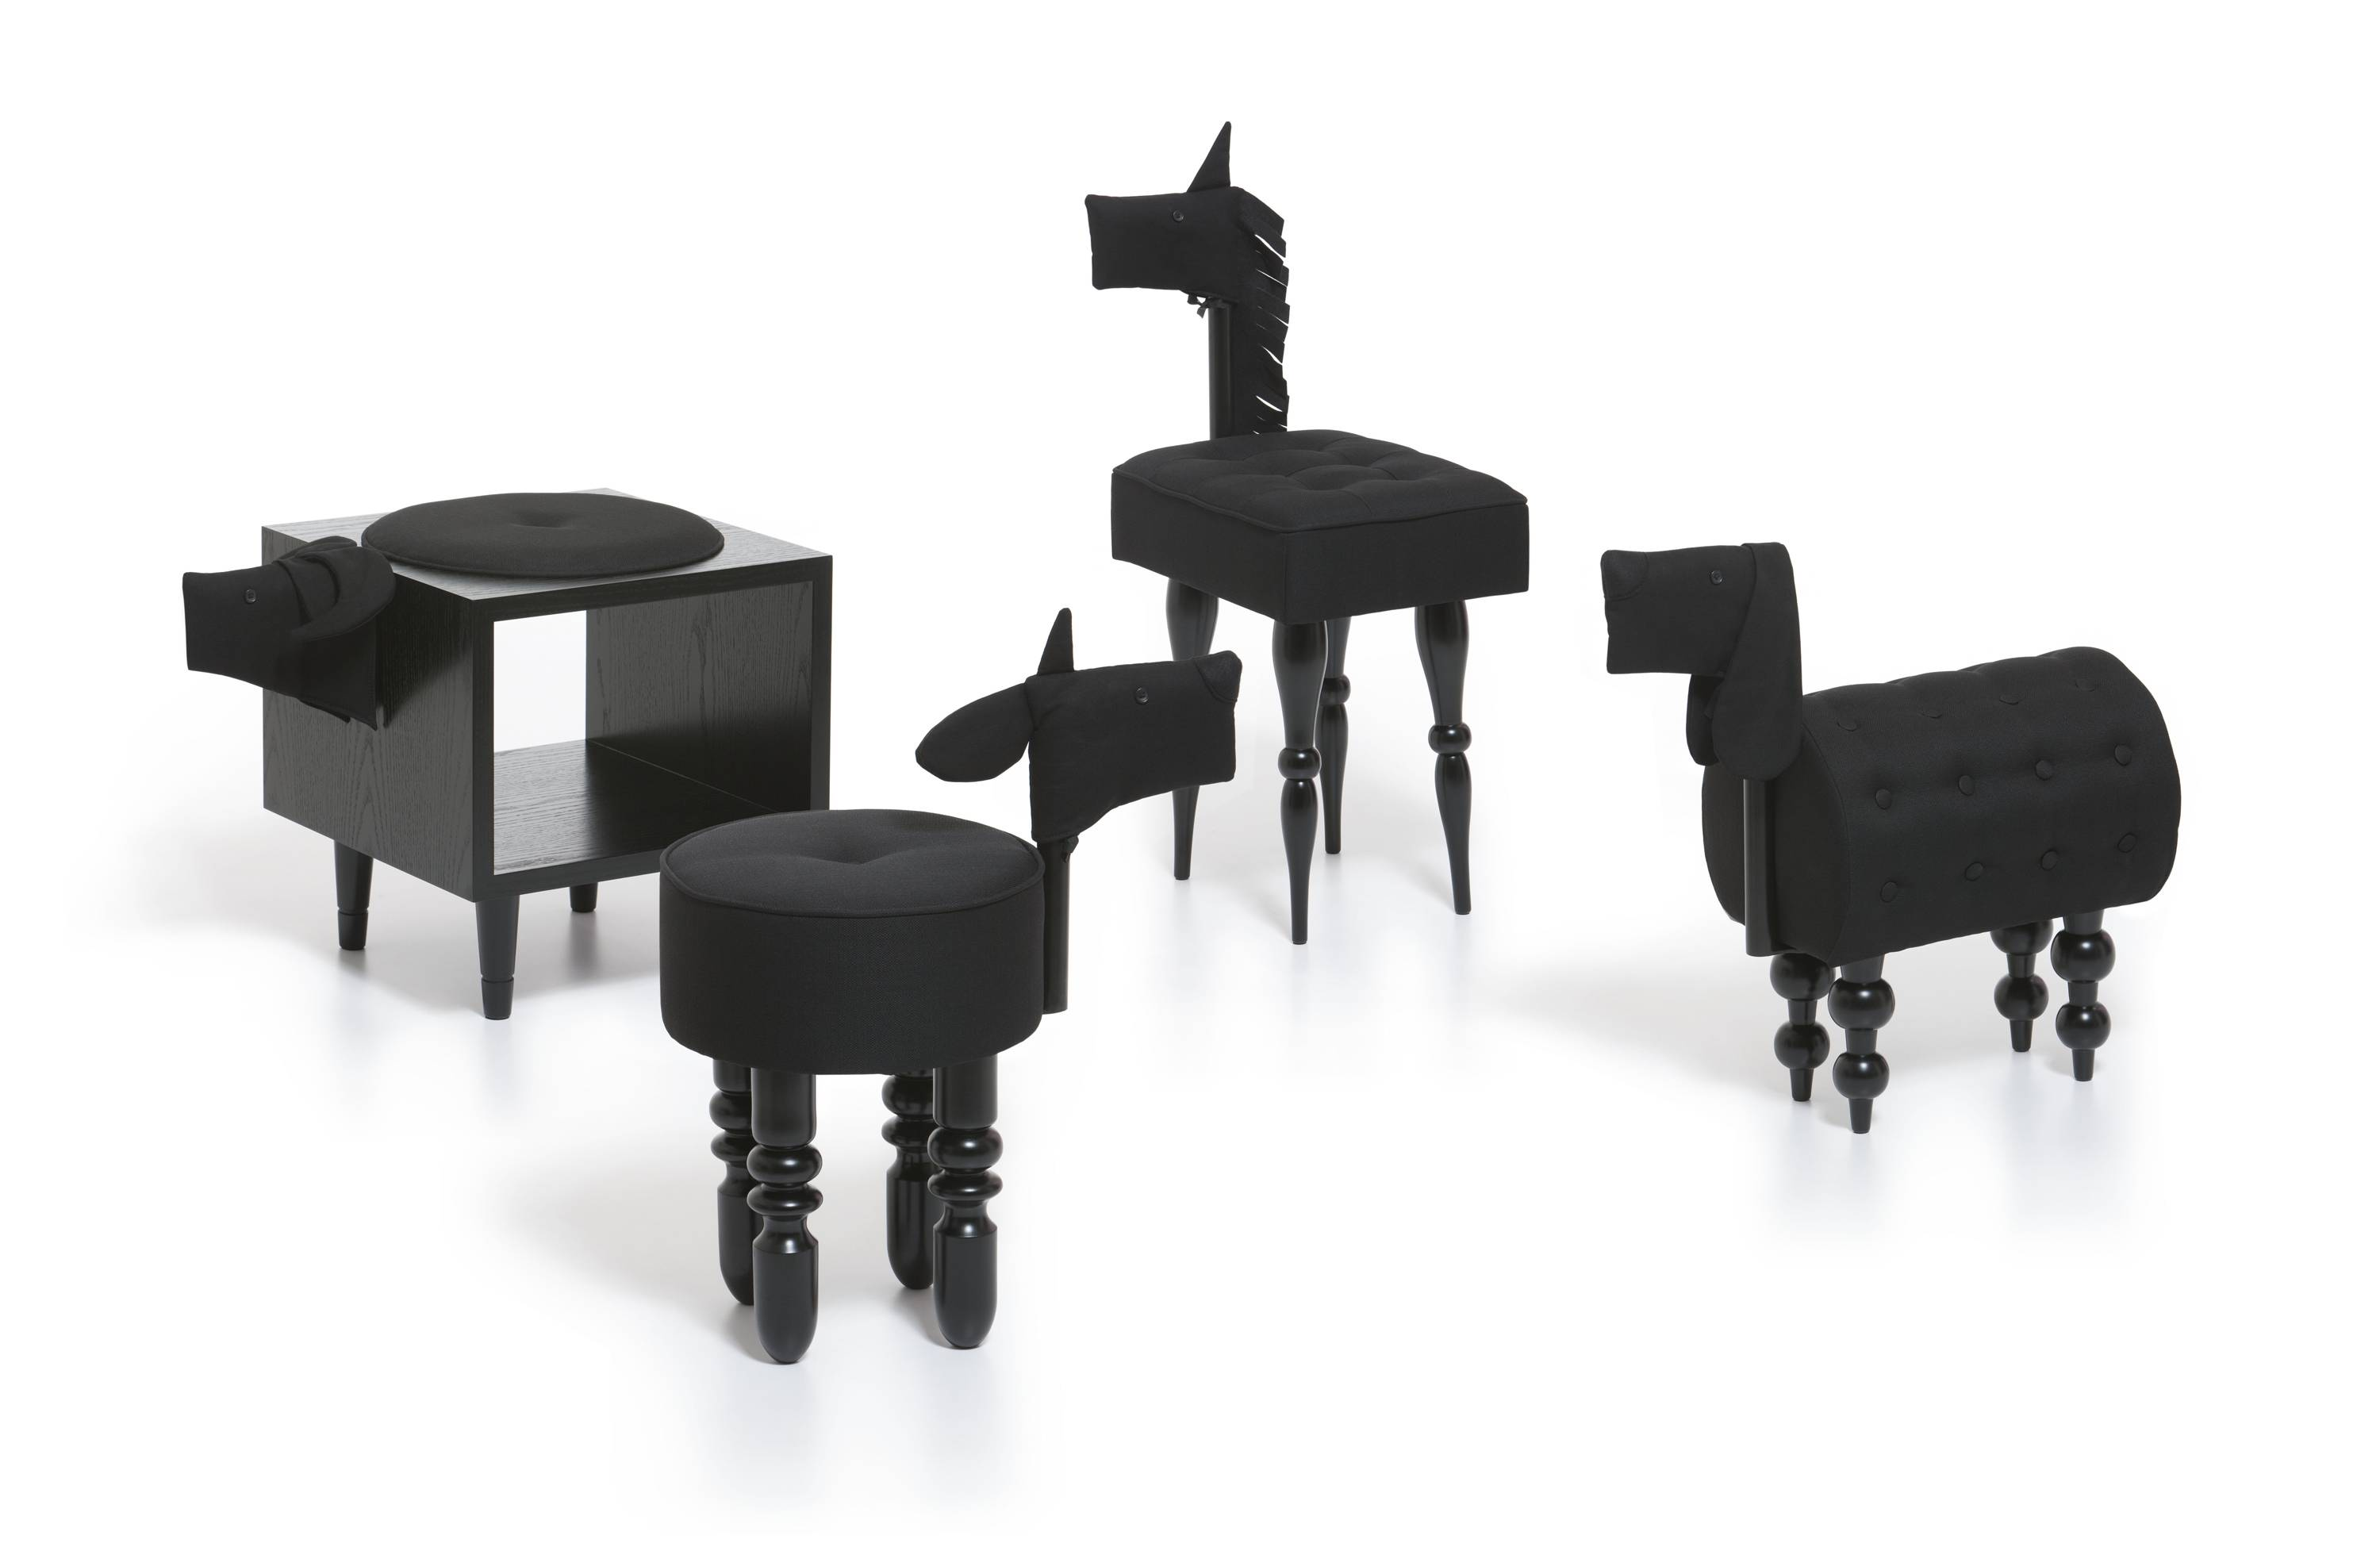 Baugust's whimsical chairs include a lamb, buffalo, dog and pony. Upholstered in black fabric and perched on curvy legs, they're at once clever seating and sculpture that nods to pop art at Mollaspace.com.